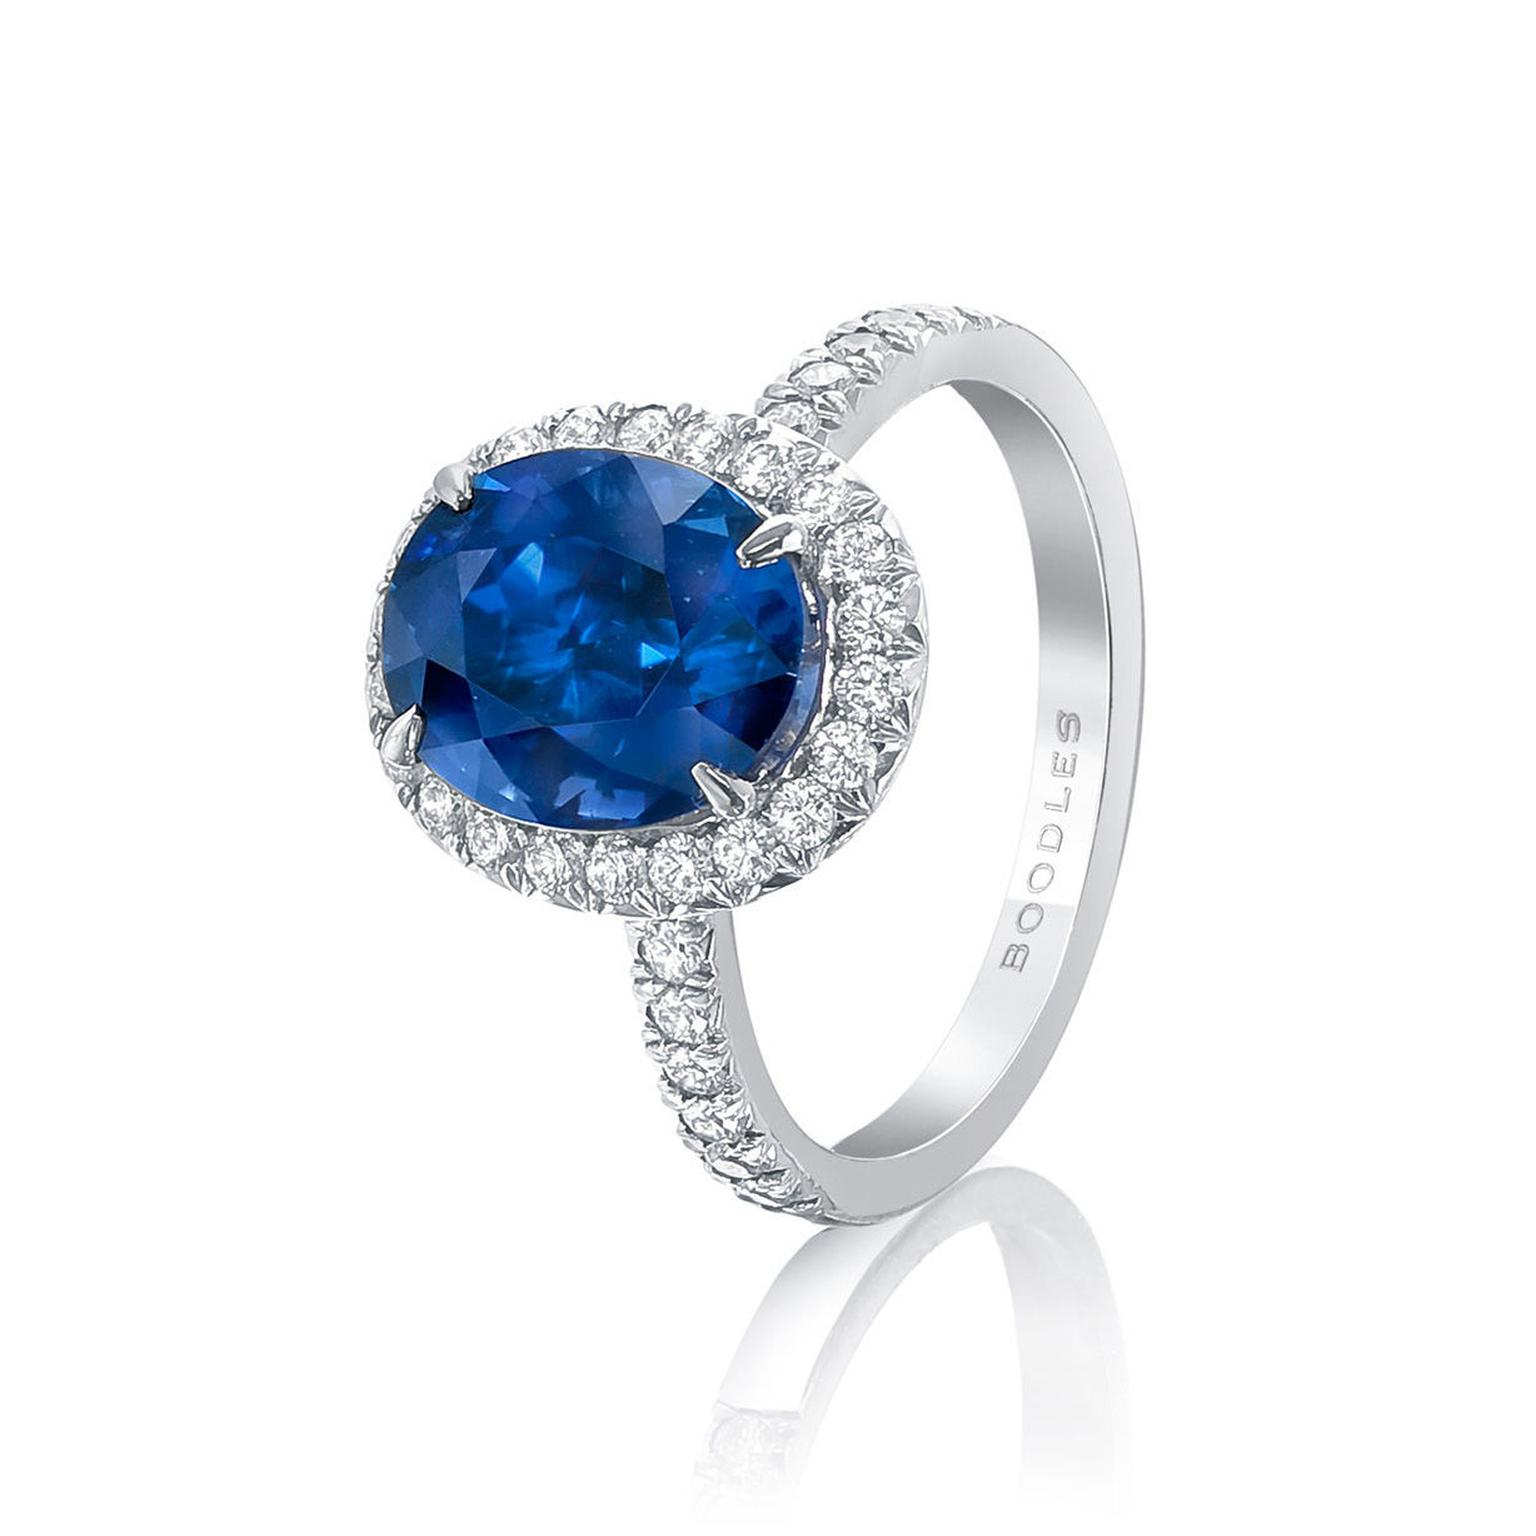 Boodles New Vintage oval-cut sapphire engagement ring with diamonds